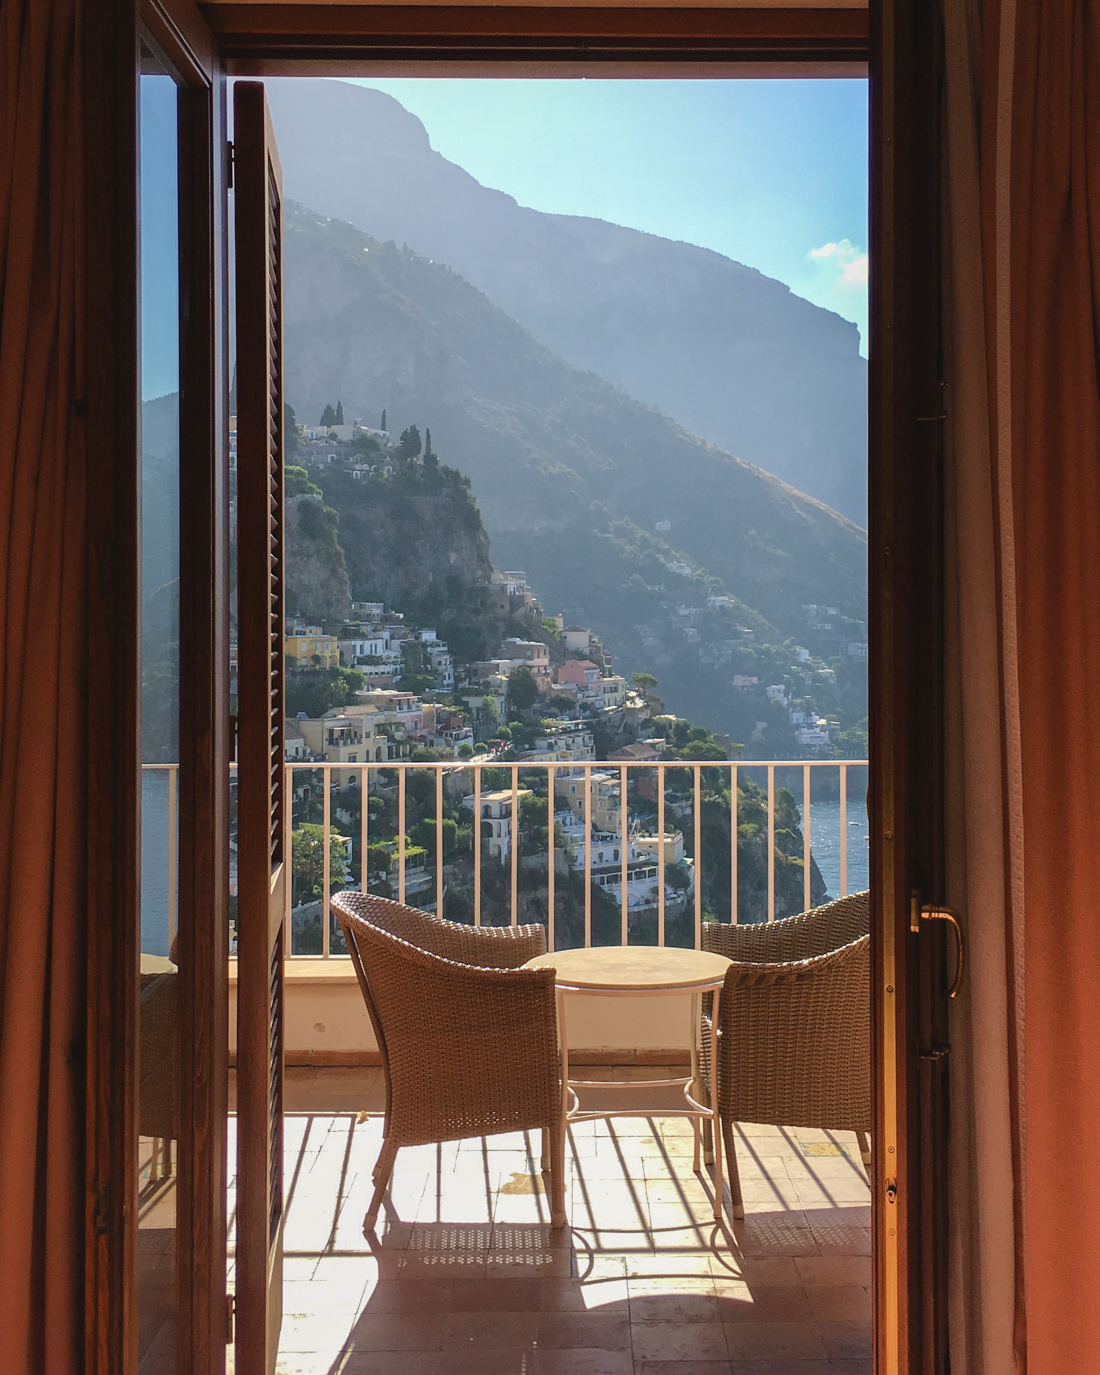 Casa Albertina- Hotels in Positano. Hotels in Italy: What to expect and tips for booking the best hotel. Travel Tips   Italy Hotels   #italy #traveltips